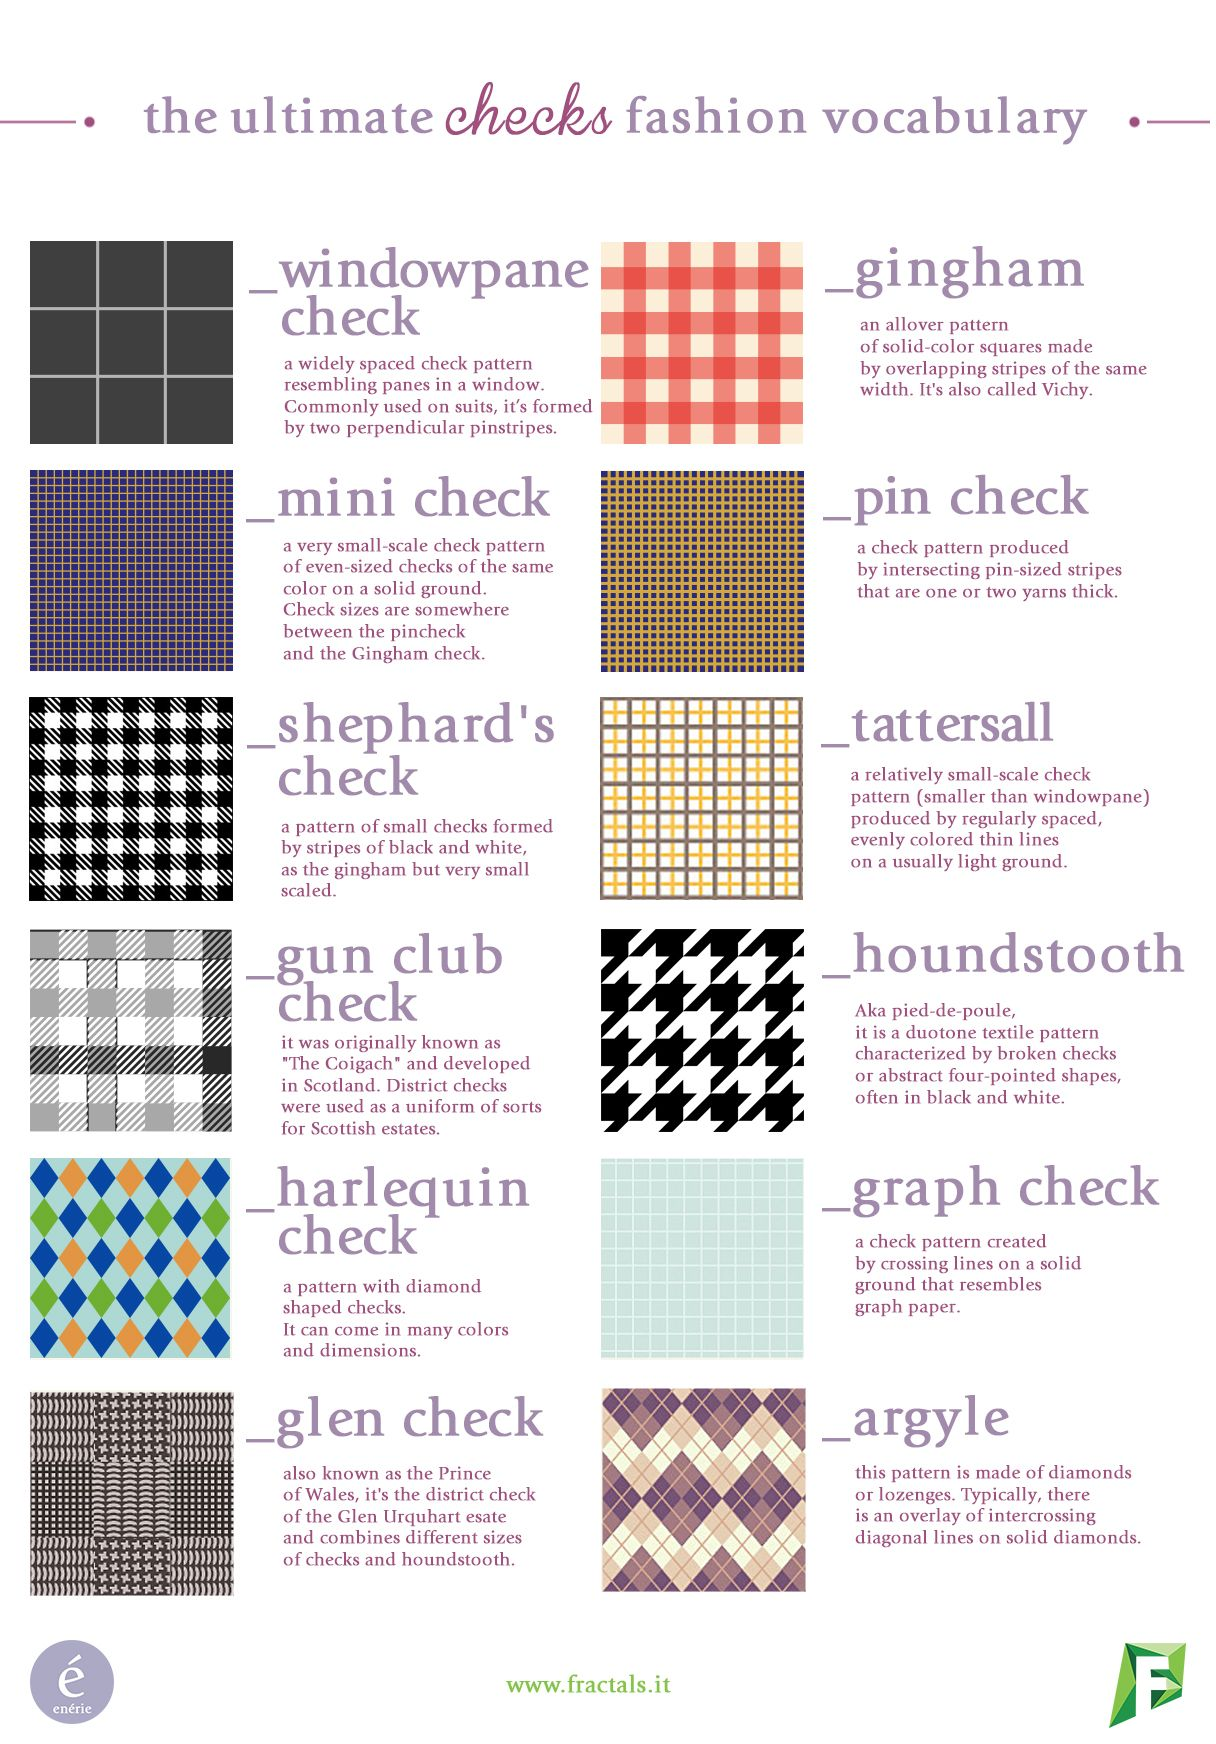 The Ultimate Checks Fashion Vocabulary